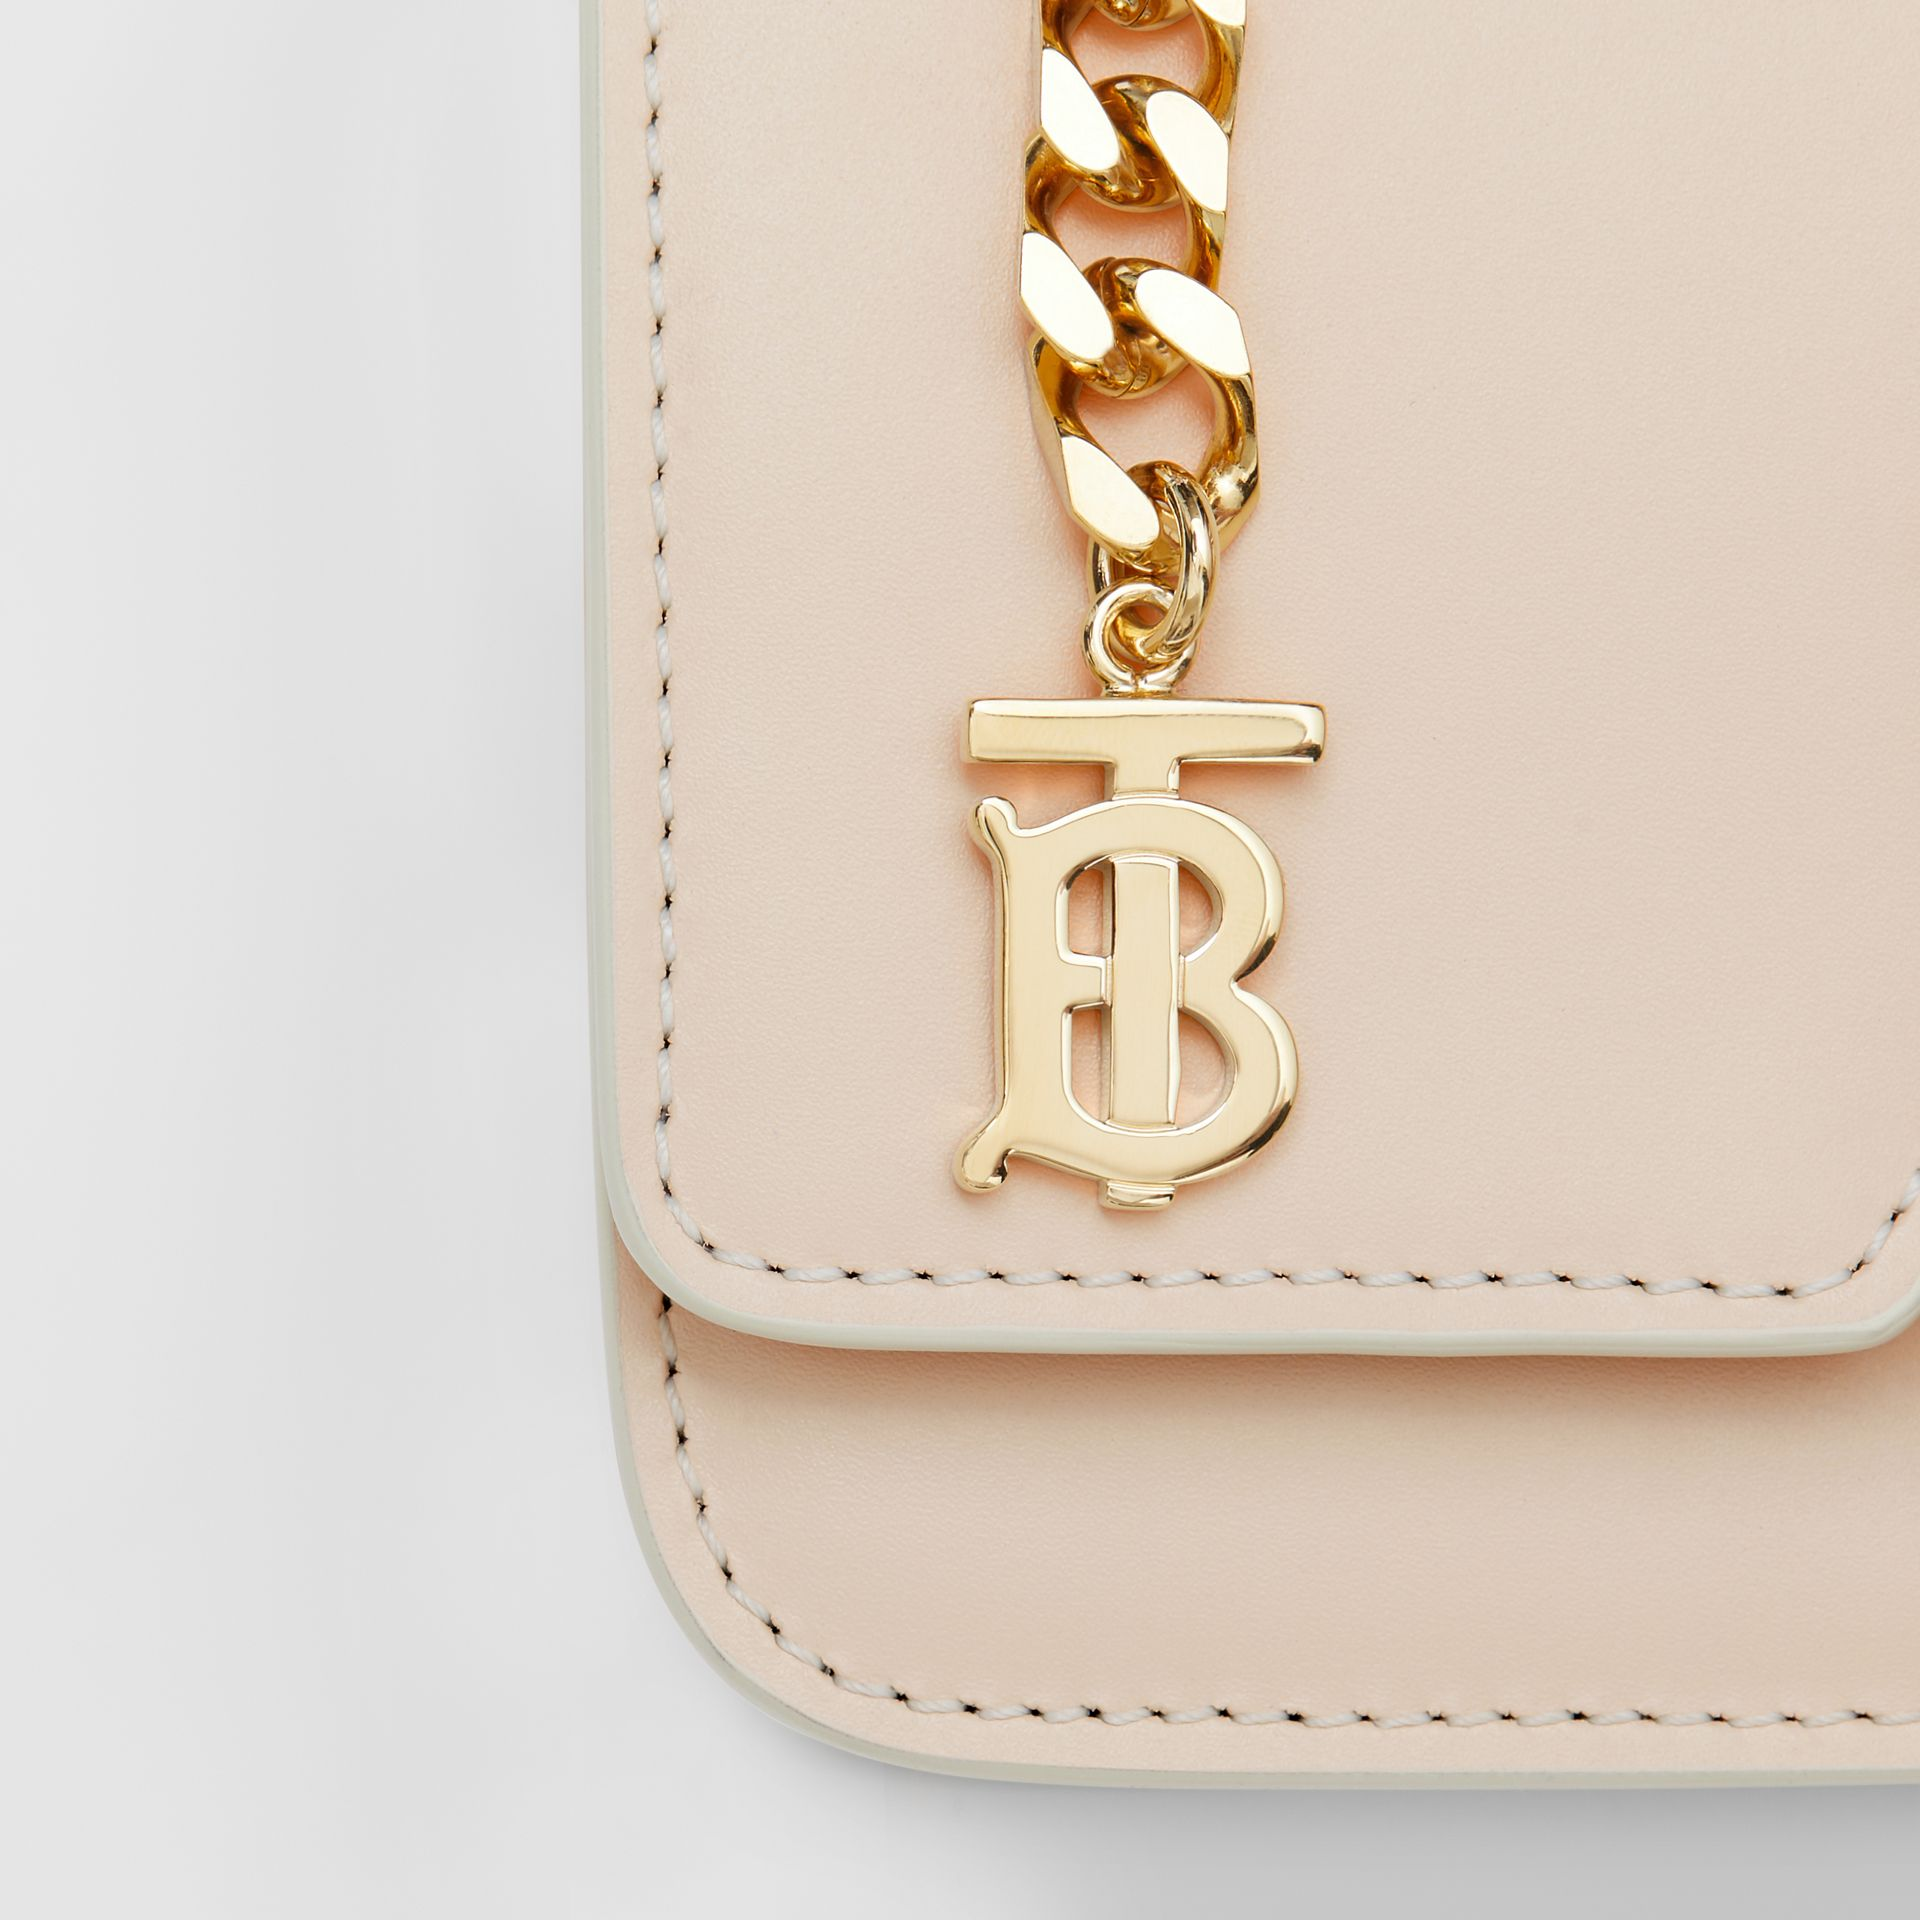 Belted Leather TB Bag in Vanilla - Women | Burberry Canada - gallery image 1